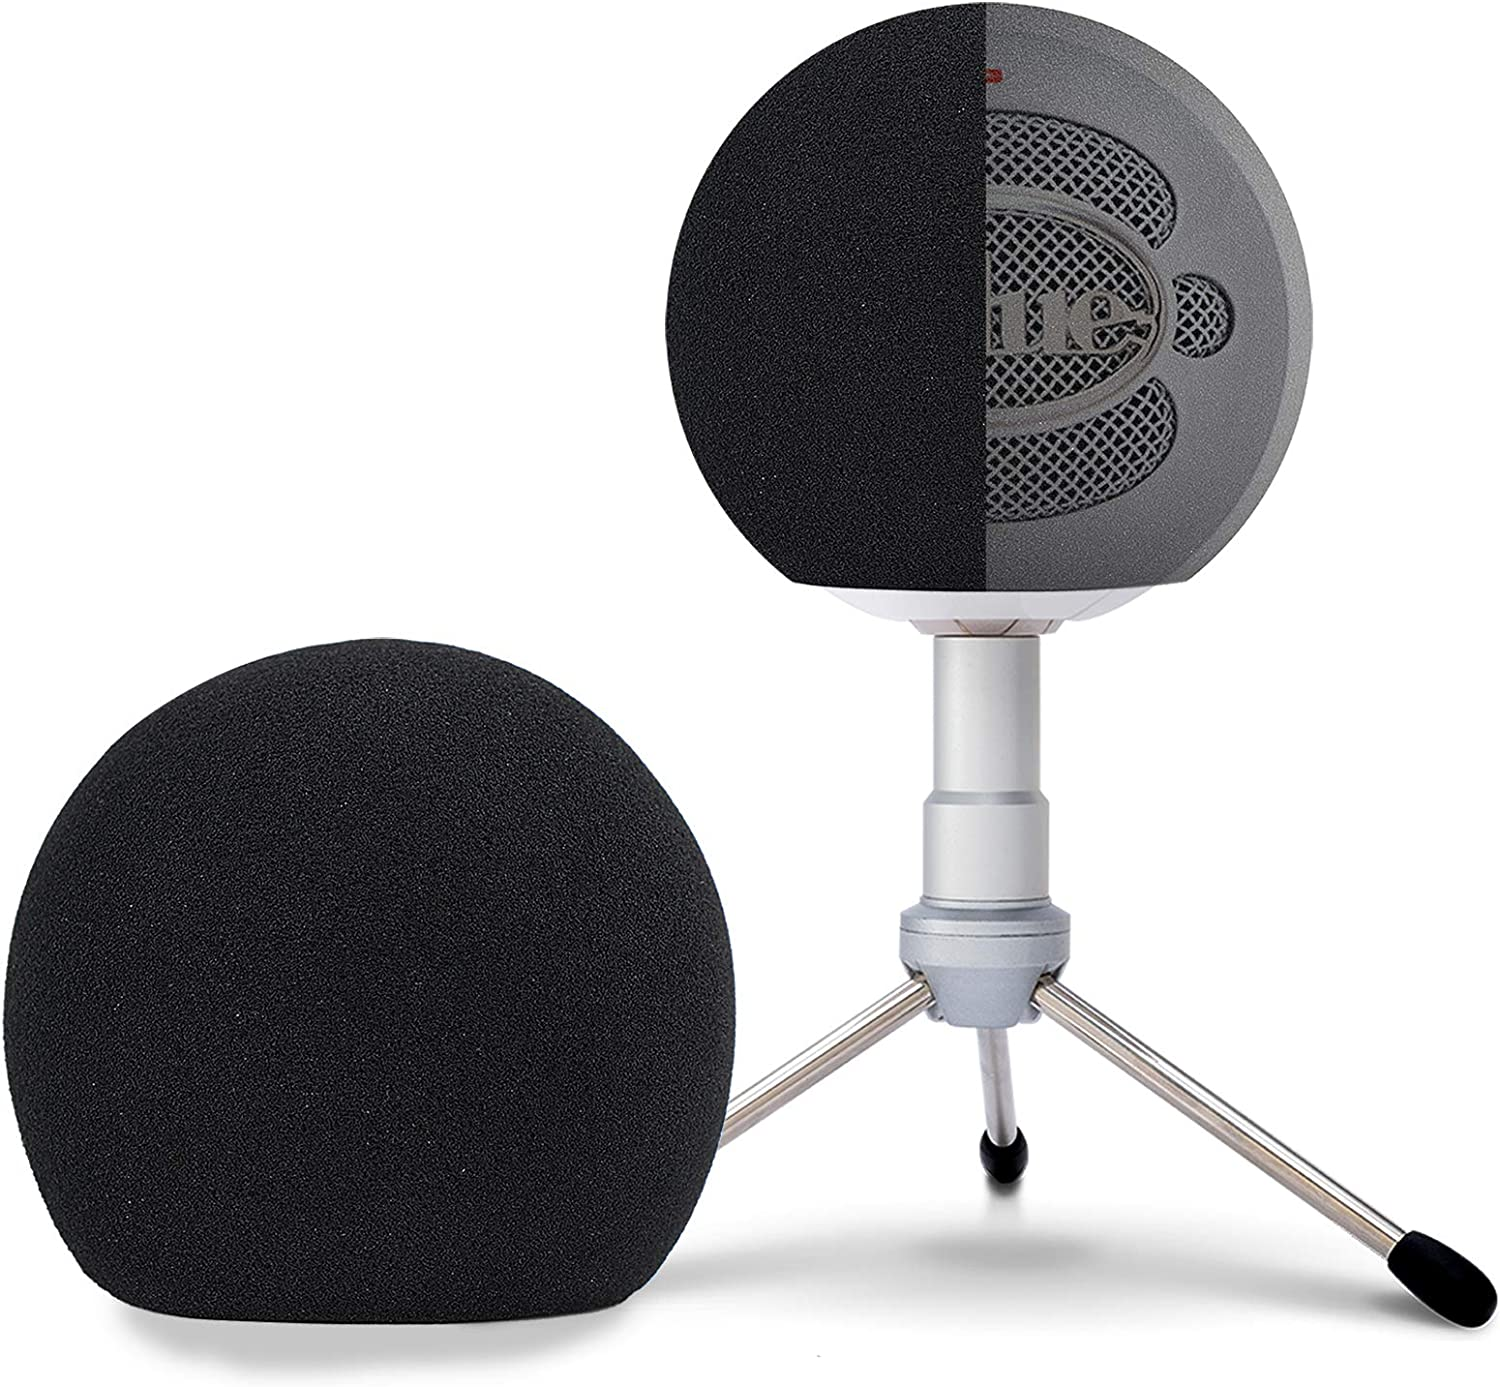 Blue Snowball Manufacturer regenerated product Genuine Pop Filter - Professional iCE Windscreen